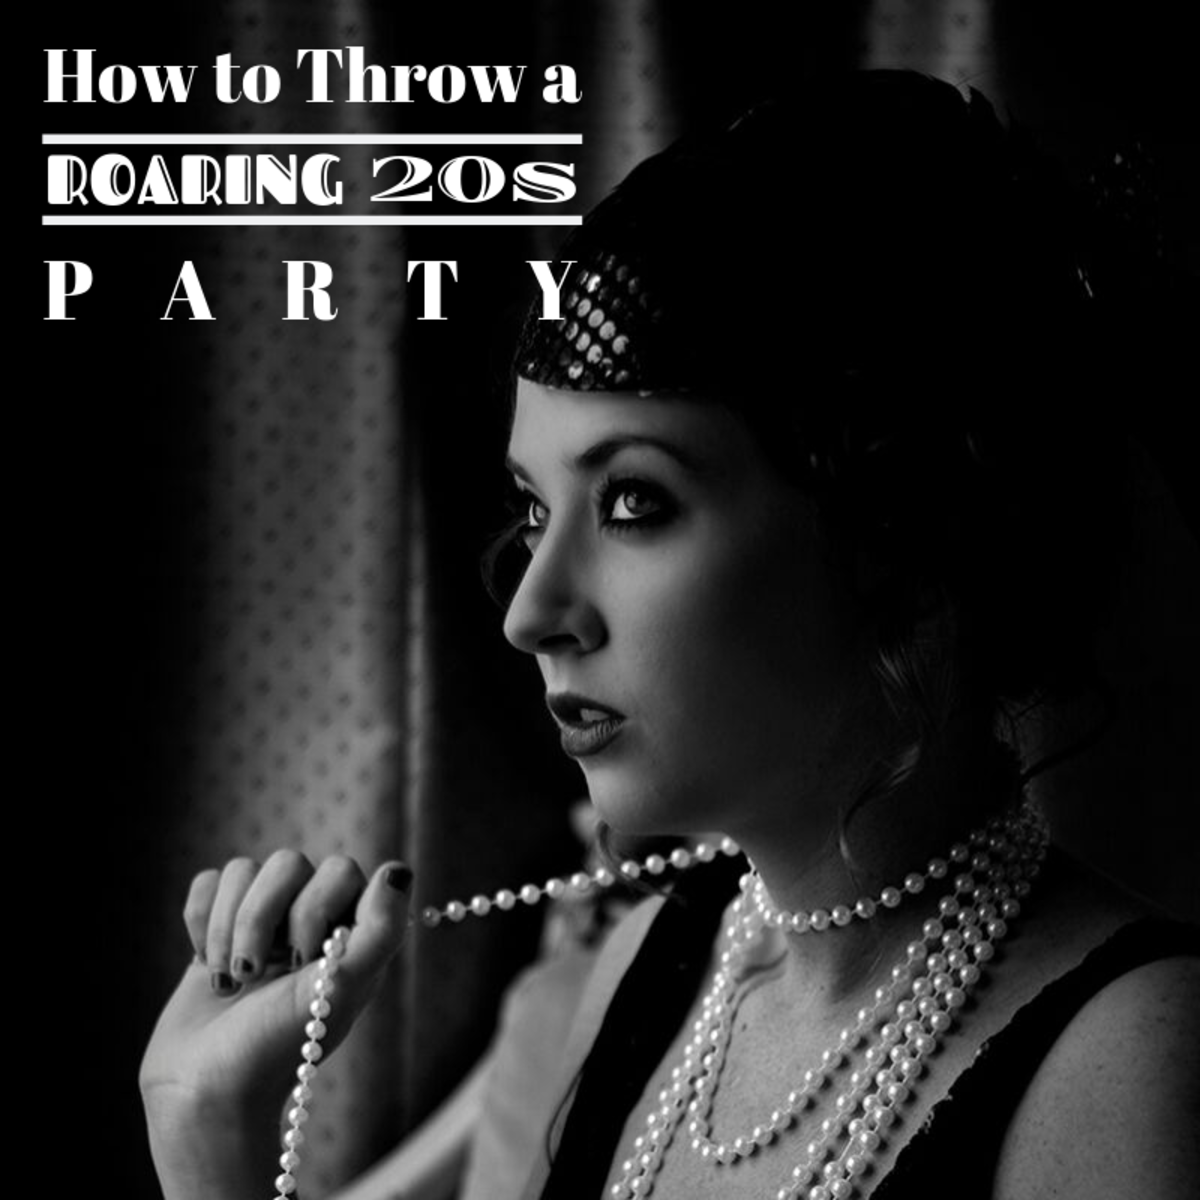 How to Throw a Roaring 20s Party: Ideas for Decor, Food, and Fun